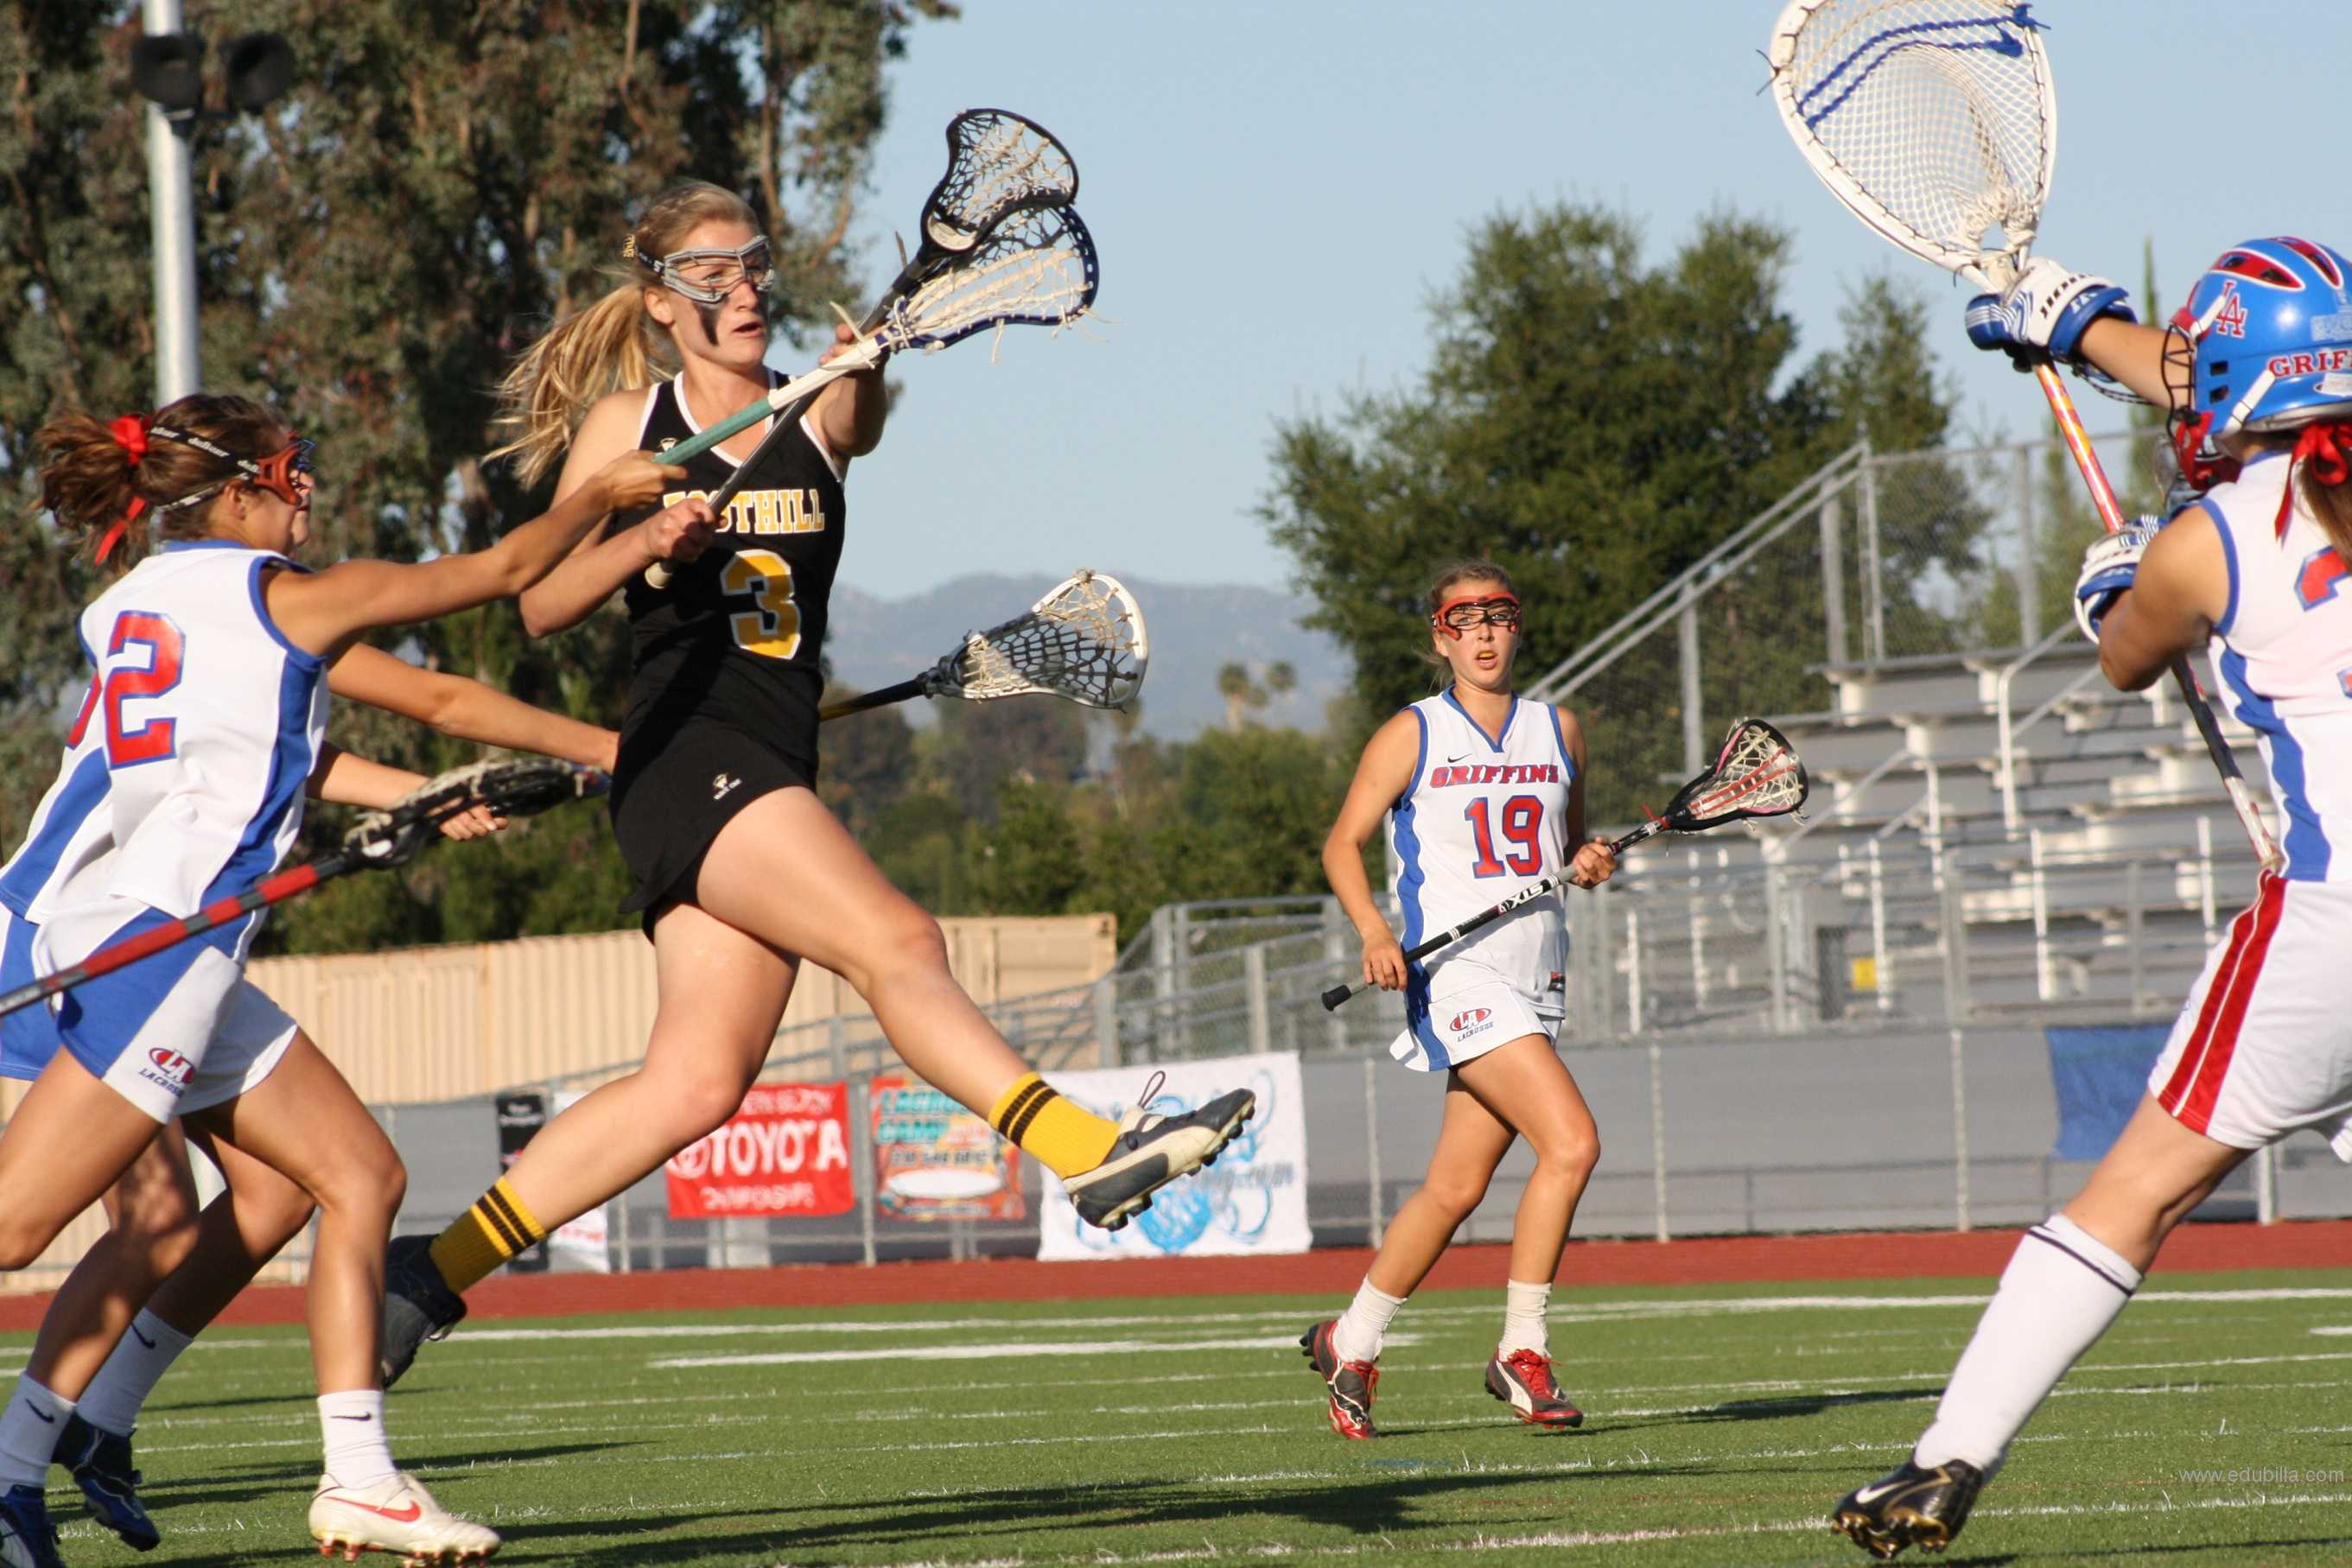 lacrosse single girls Us lacrosse has recommended the adoption of age-based segmentation for associations  since we do not have enough girls for single-based levels (ie 10u.